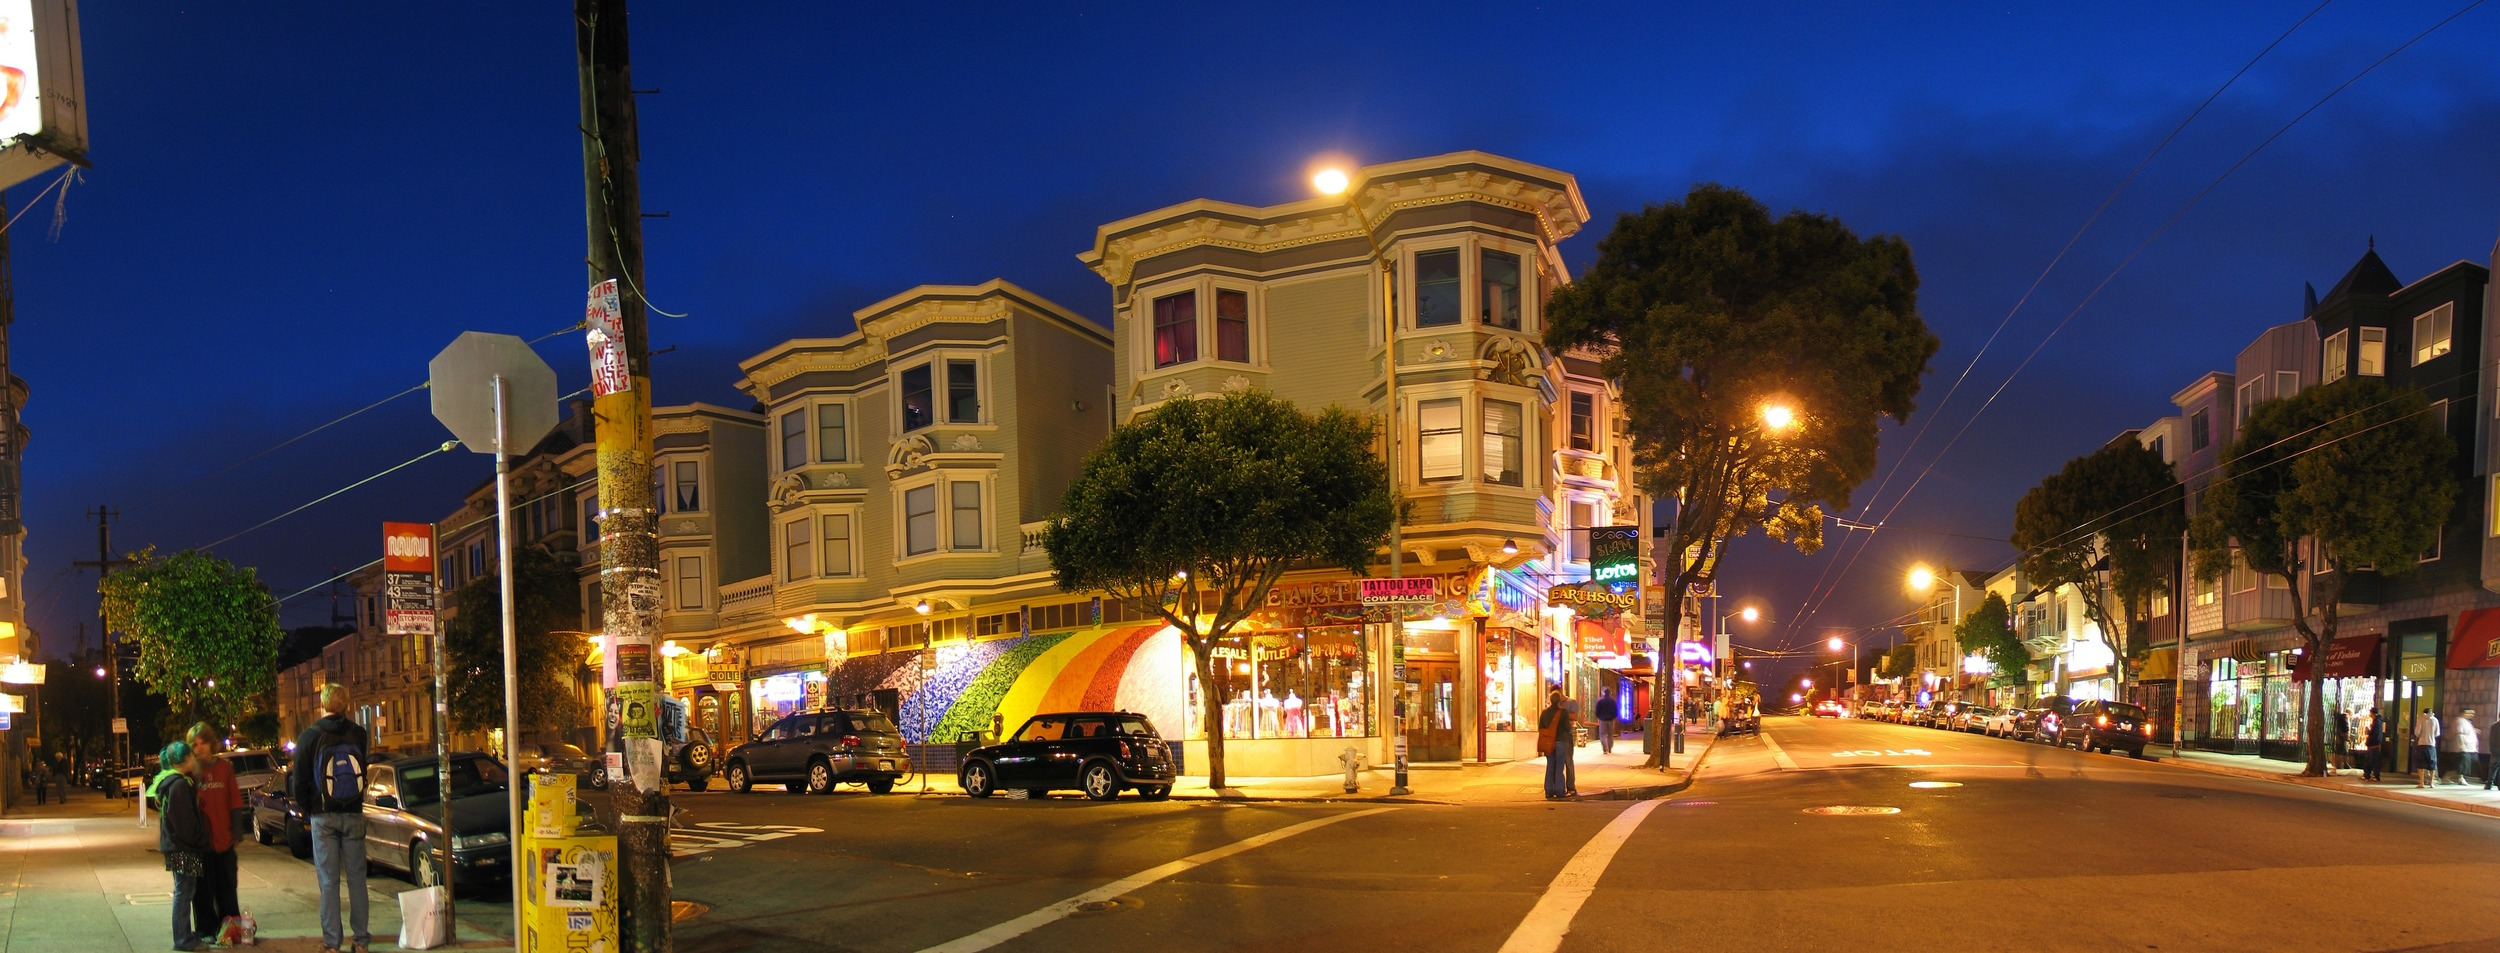 Lined with stores reminiscent of its counter-culture past, Haight Street is also home to trendy book, record and clothing shops, as well as lively bars and restaurants.